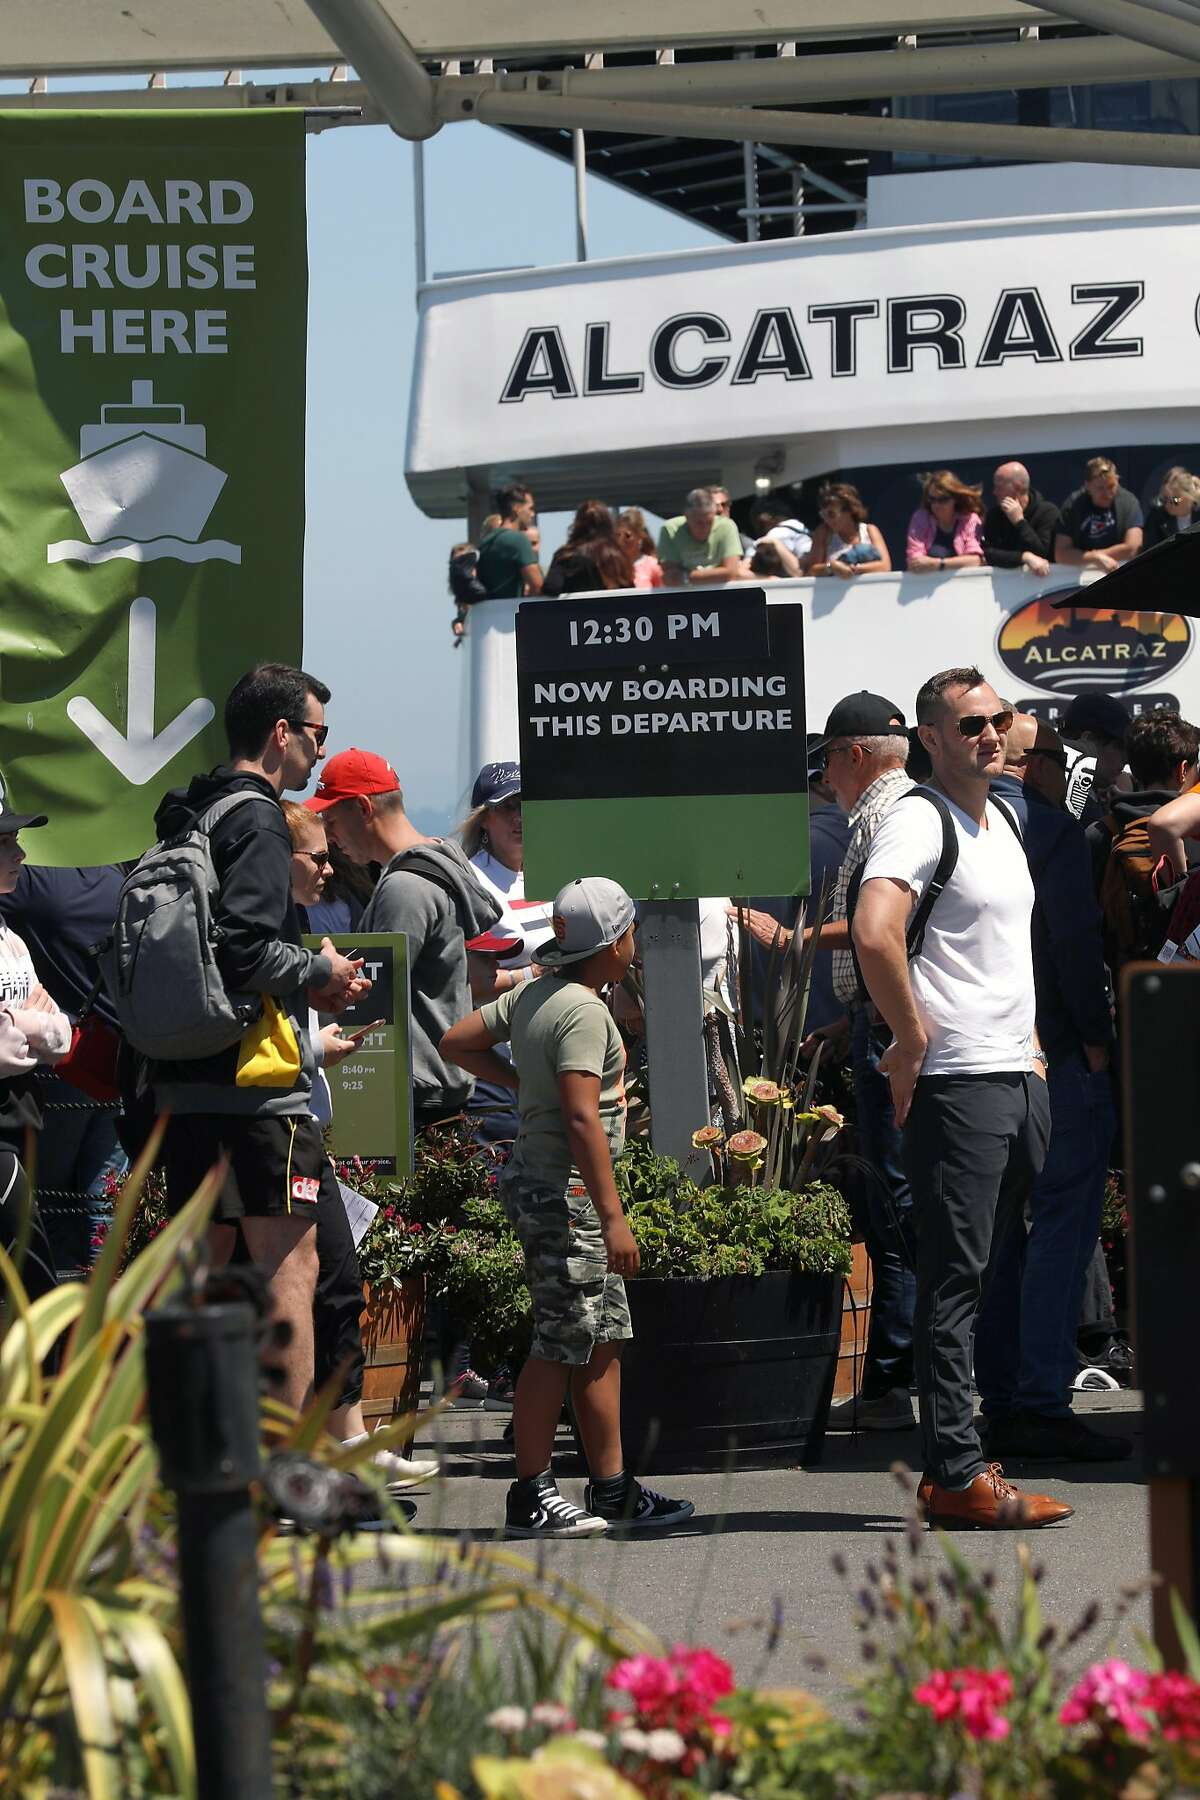 Passengers wait to board the ferry at Pier 33 Alcatraz Ferry landing on Friday, Aug. 2, 2019 in San Francisco, Calif. The National Park Service and the Port of SF plan to expand the Pier 33 Alcatraz Ferry landing with a new cafe, public plaza, and visitor center for expanded service